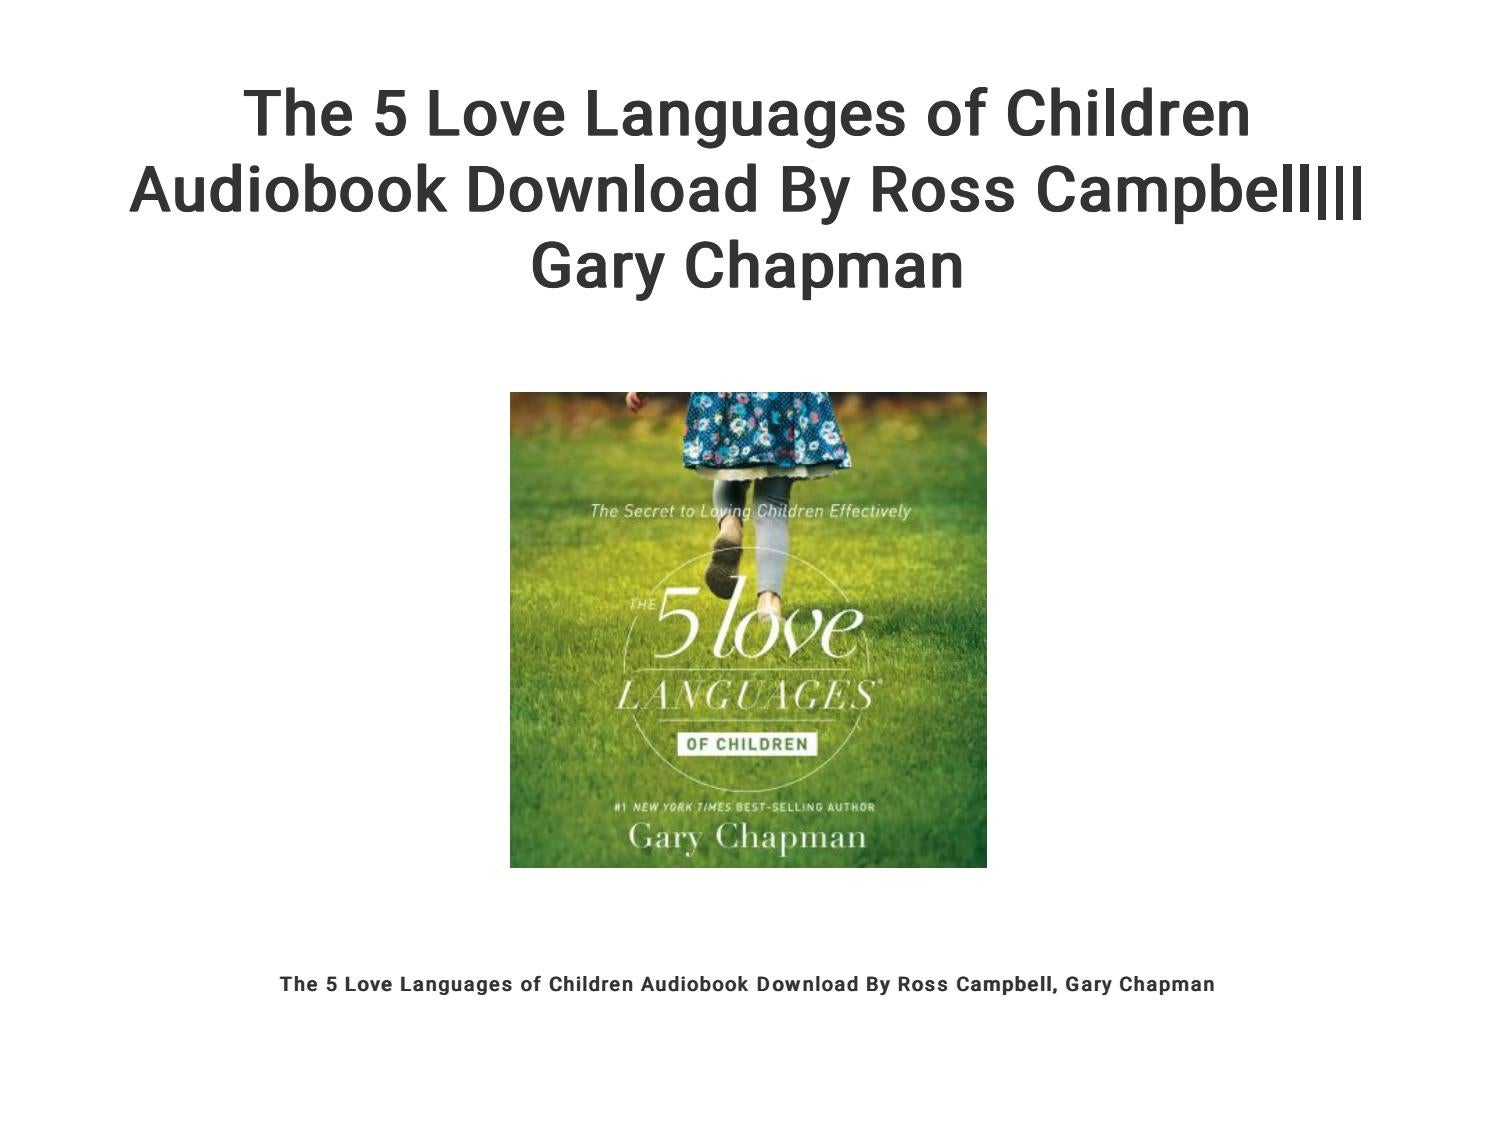 The 5 Love Languages of Children Audiobook Download By Ross Campbell|||  Gary Chapman by curaj4260 - issuu